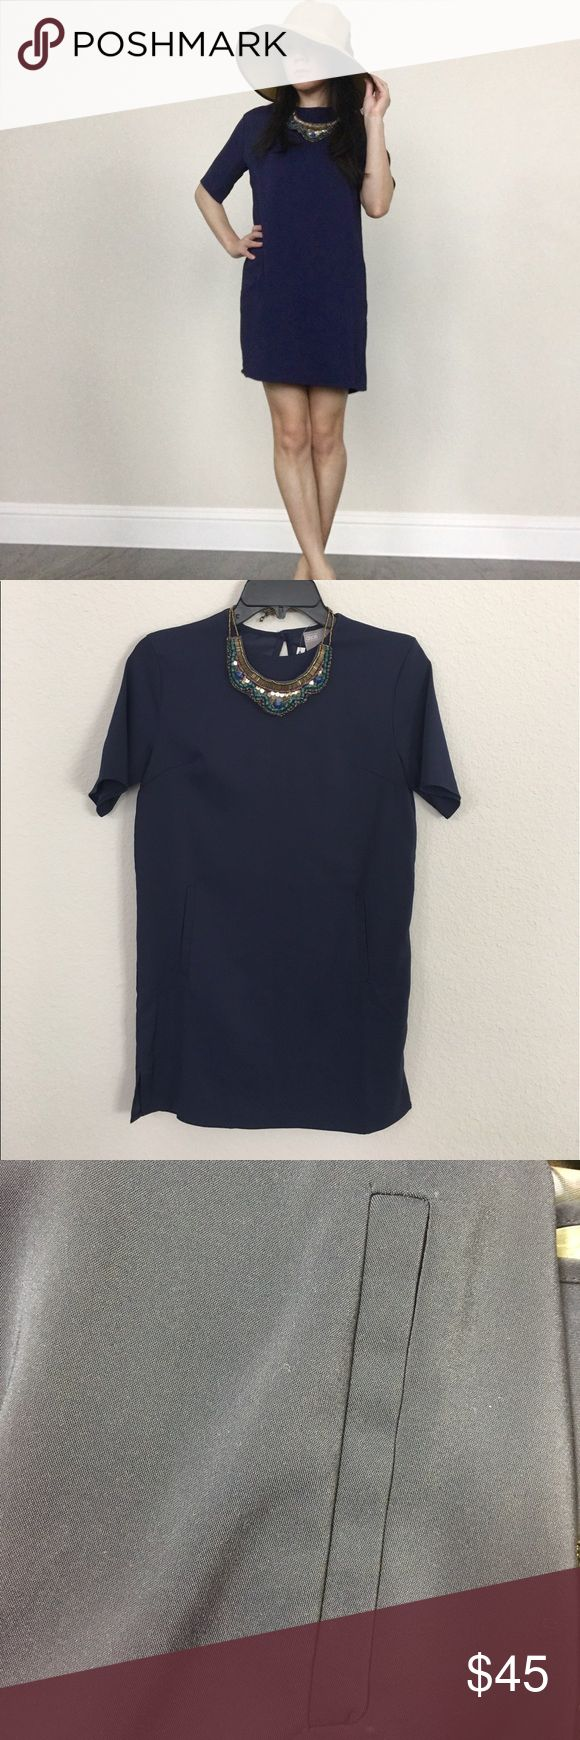 """ASOS navy shift dress 2P NWT navy shift dress with pockets (still sewn). You can dress it up or down. Super comfortable for spring or summer time! Necklace no included. Approx: 30.75""""L and 16.5"""" armpit to armpit. Please ask question. No trades or returns ASOS Petite Dresses"""